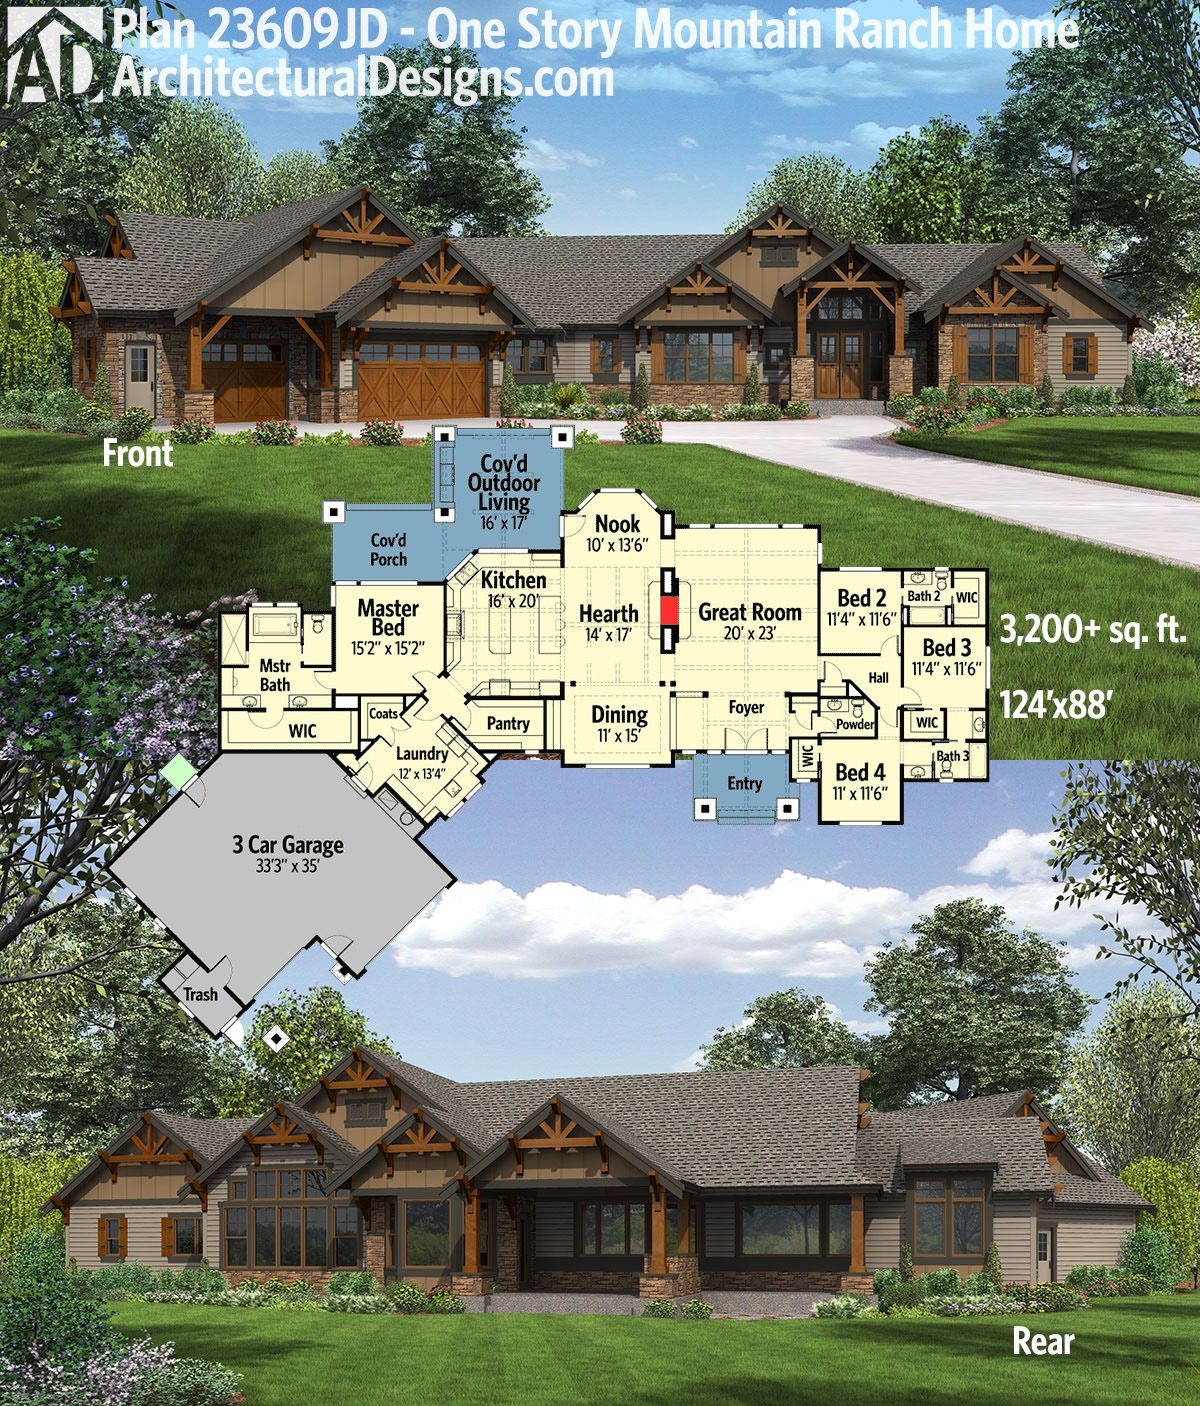 Plan 23609JD: One Story Mountain Ranch Home with Options | Outdoor ...